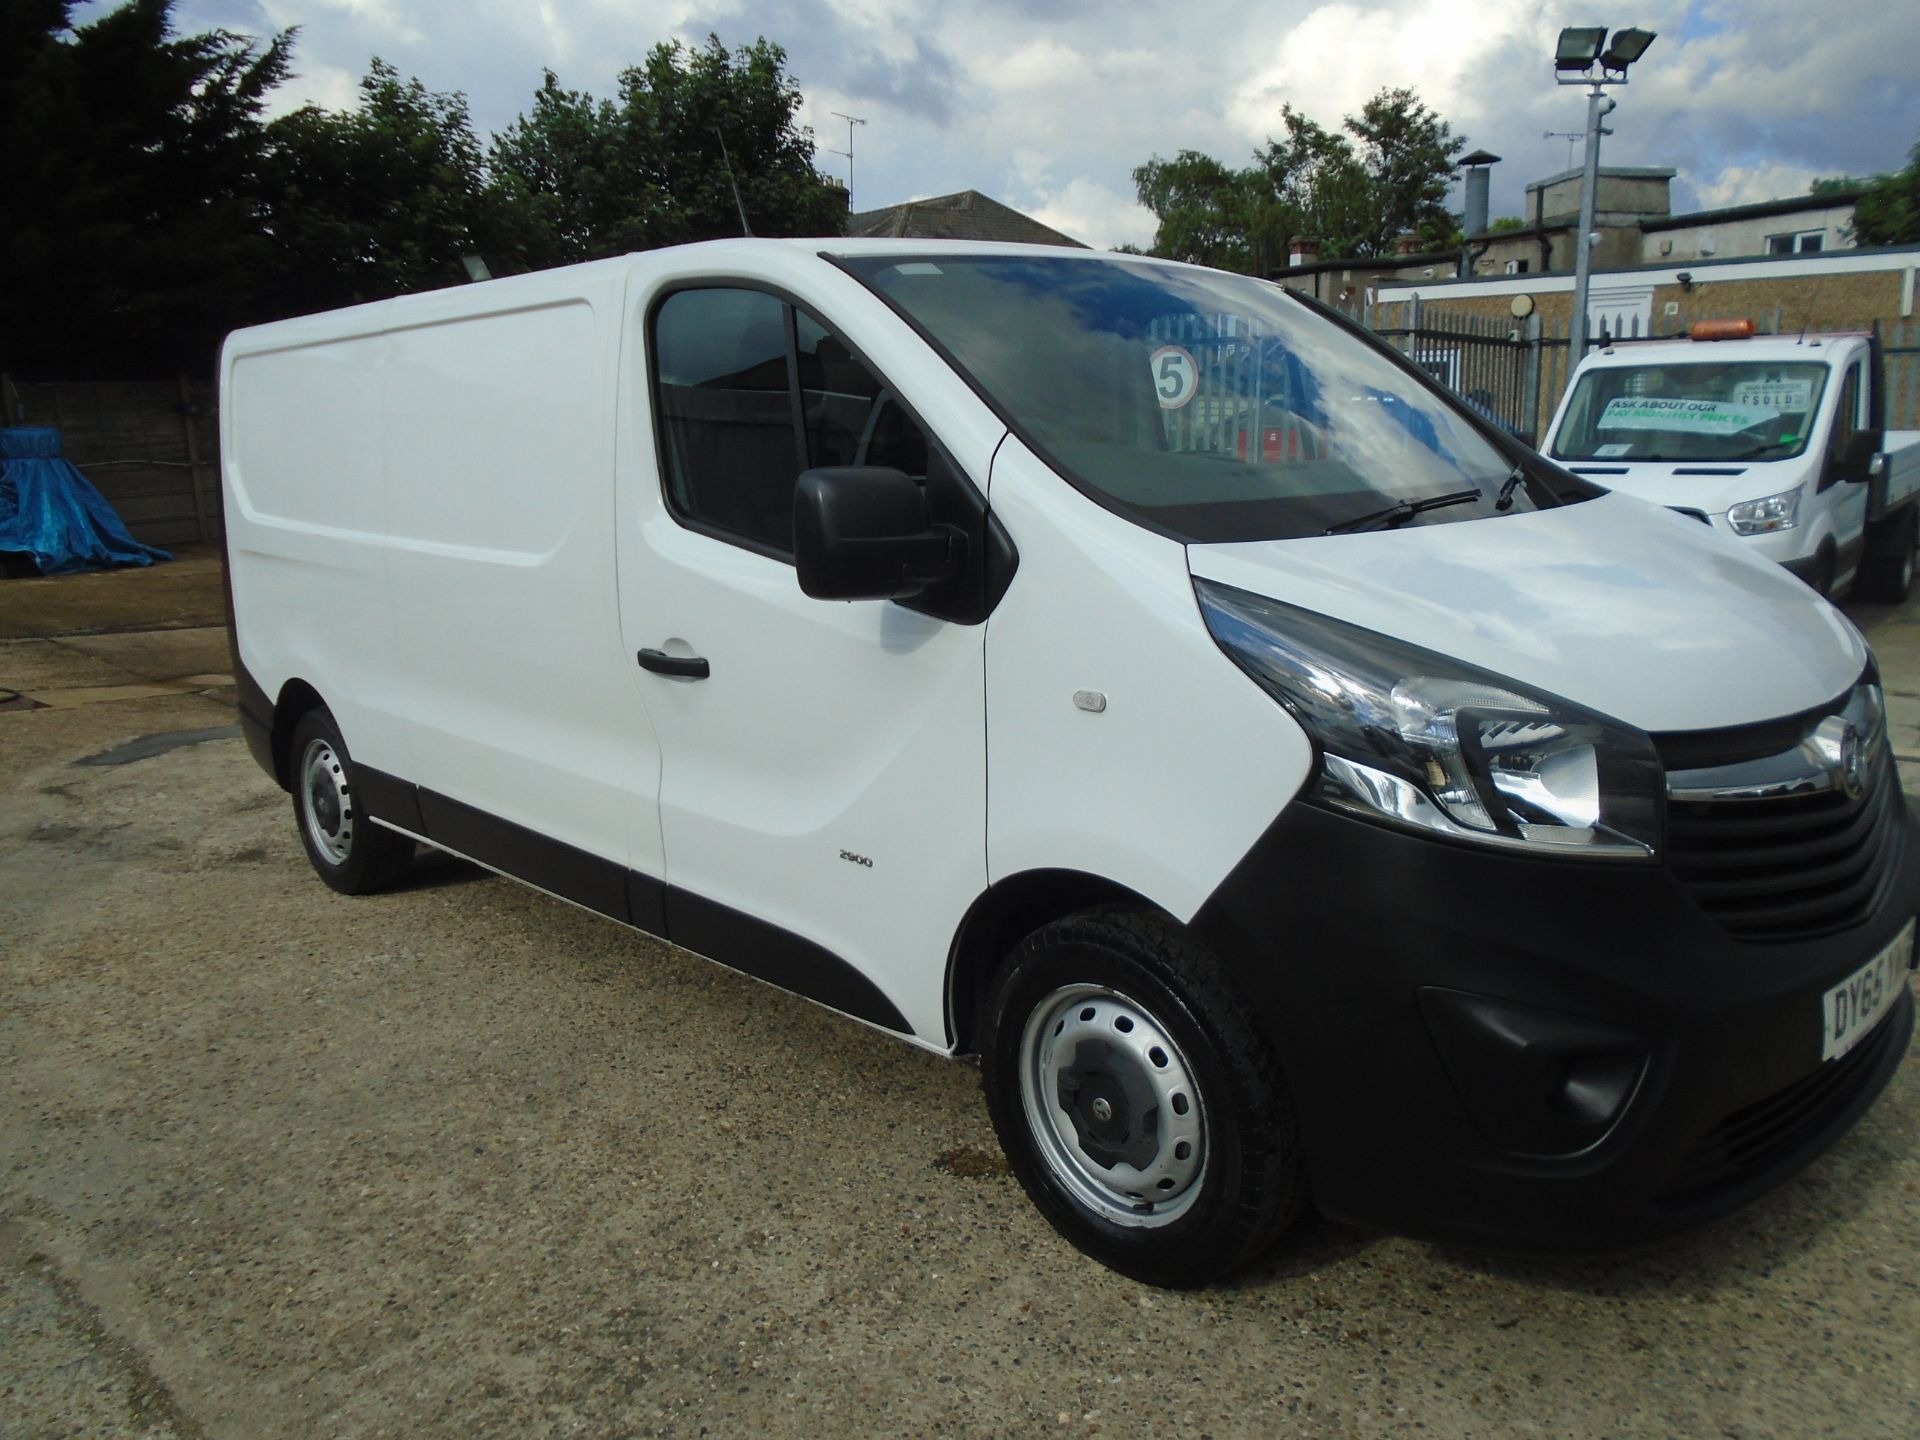 2015 Vauxhall Vivaro  L2 H1 2900 1.6 115PS EURO 5 *VALUE RANGE VEHICLE CONDITION REFLECTED IN PRICE* (DY65YME)